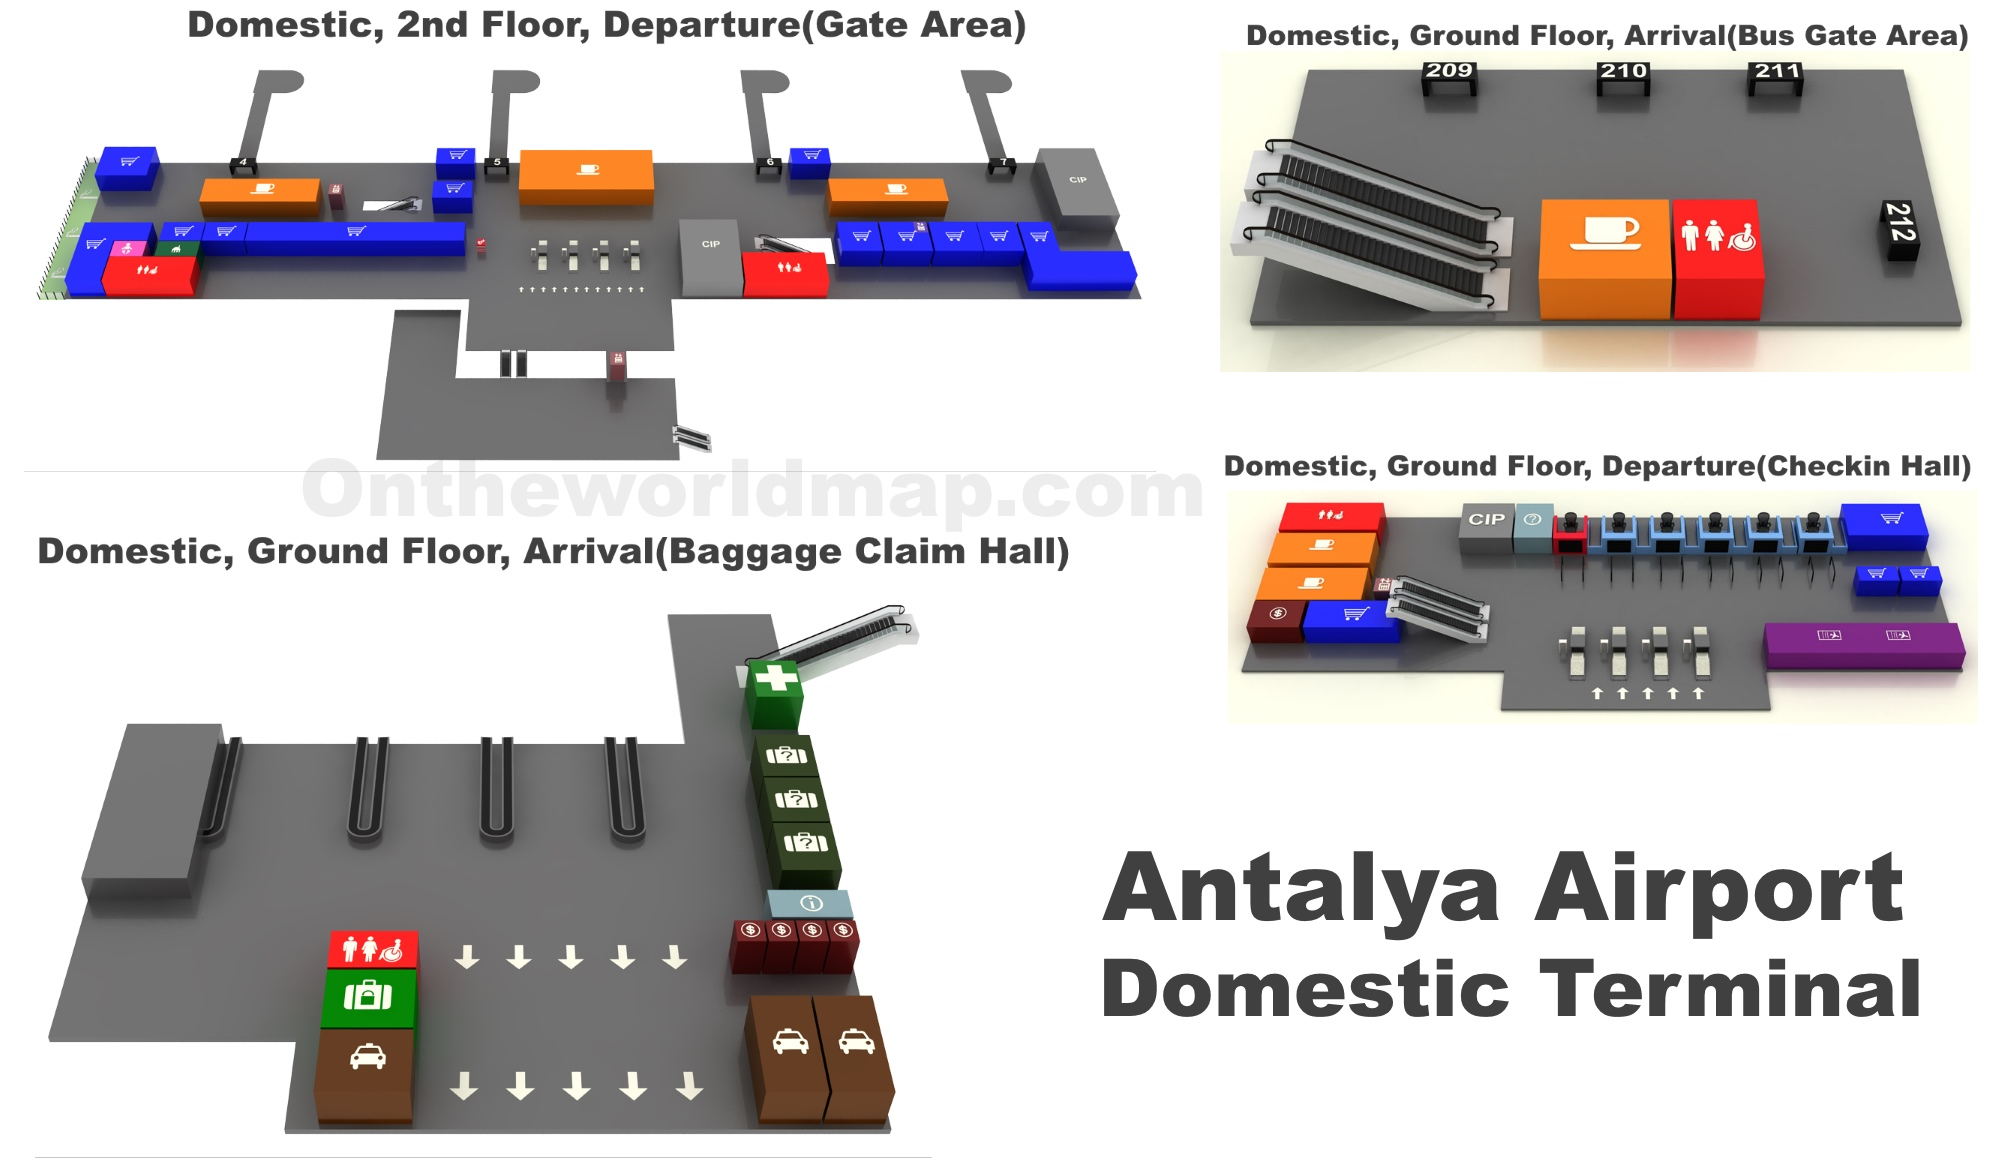 Antalya Airport Domestic Terminal Map